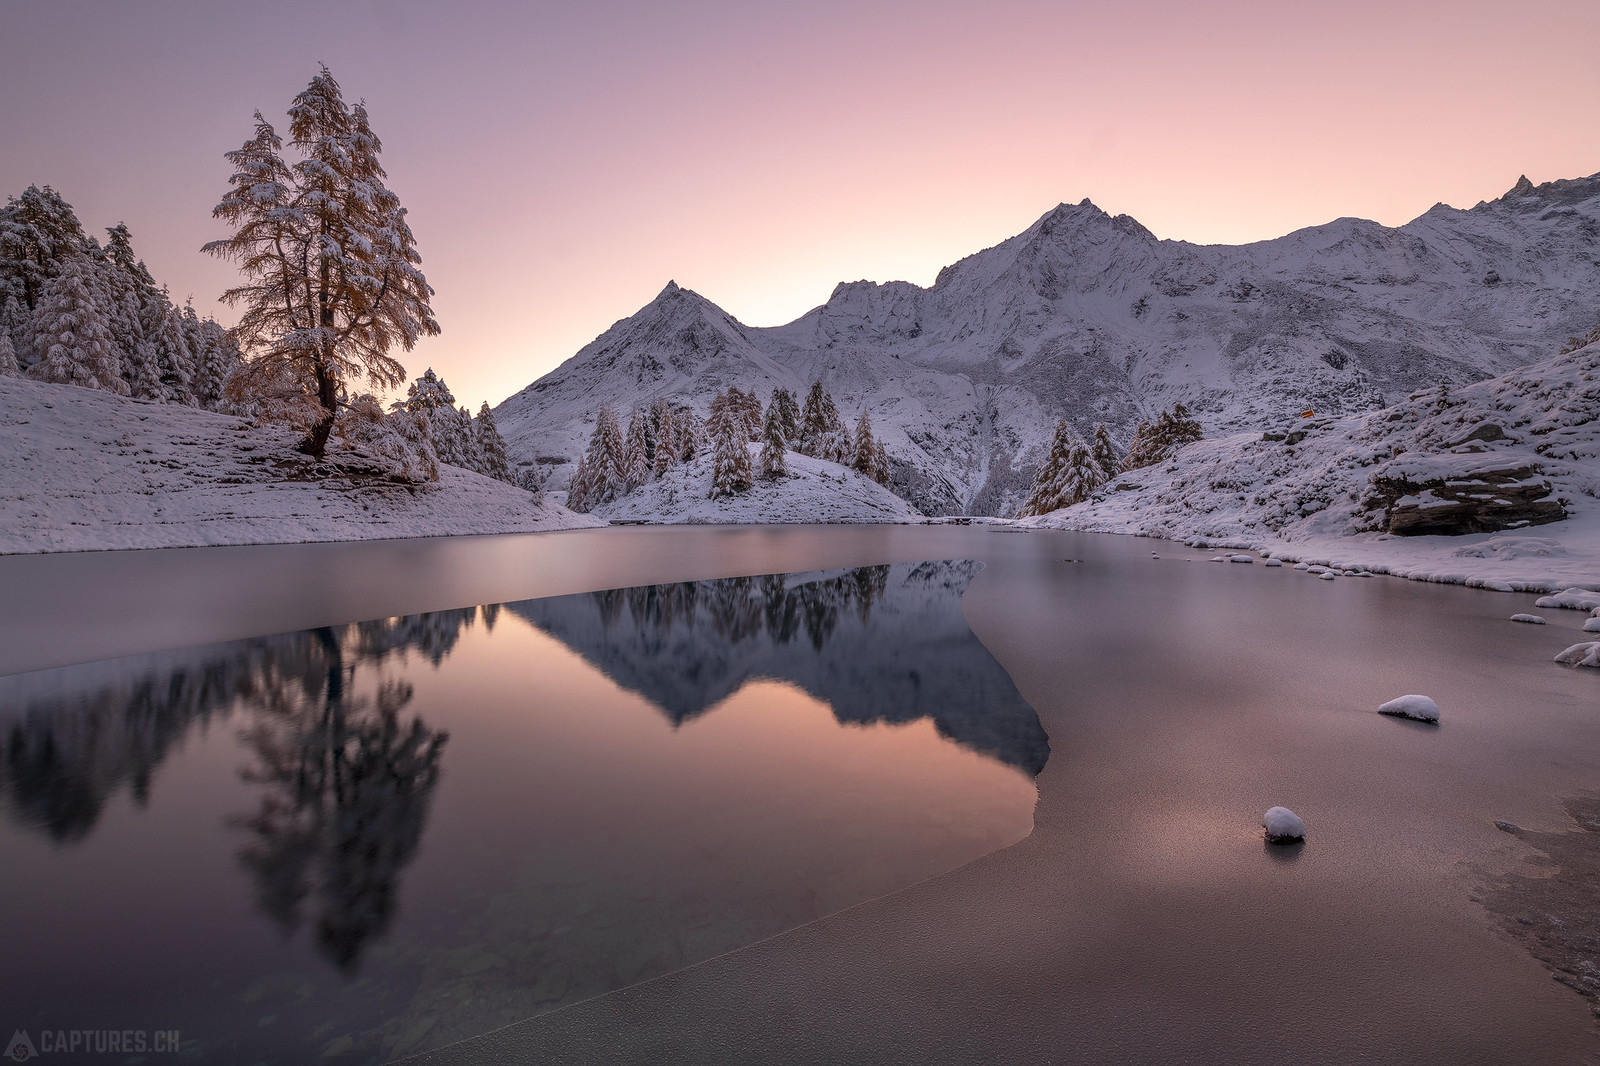 Dawn colors in the snow - Lac bleu